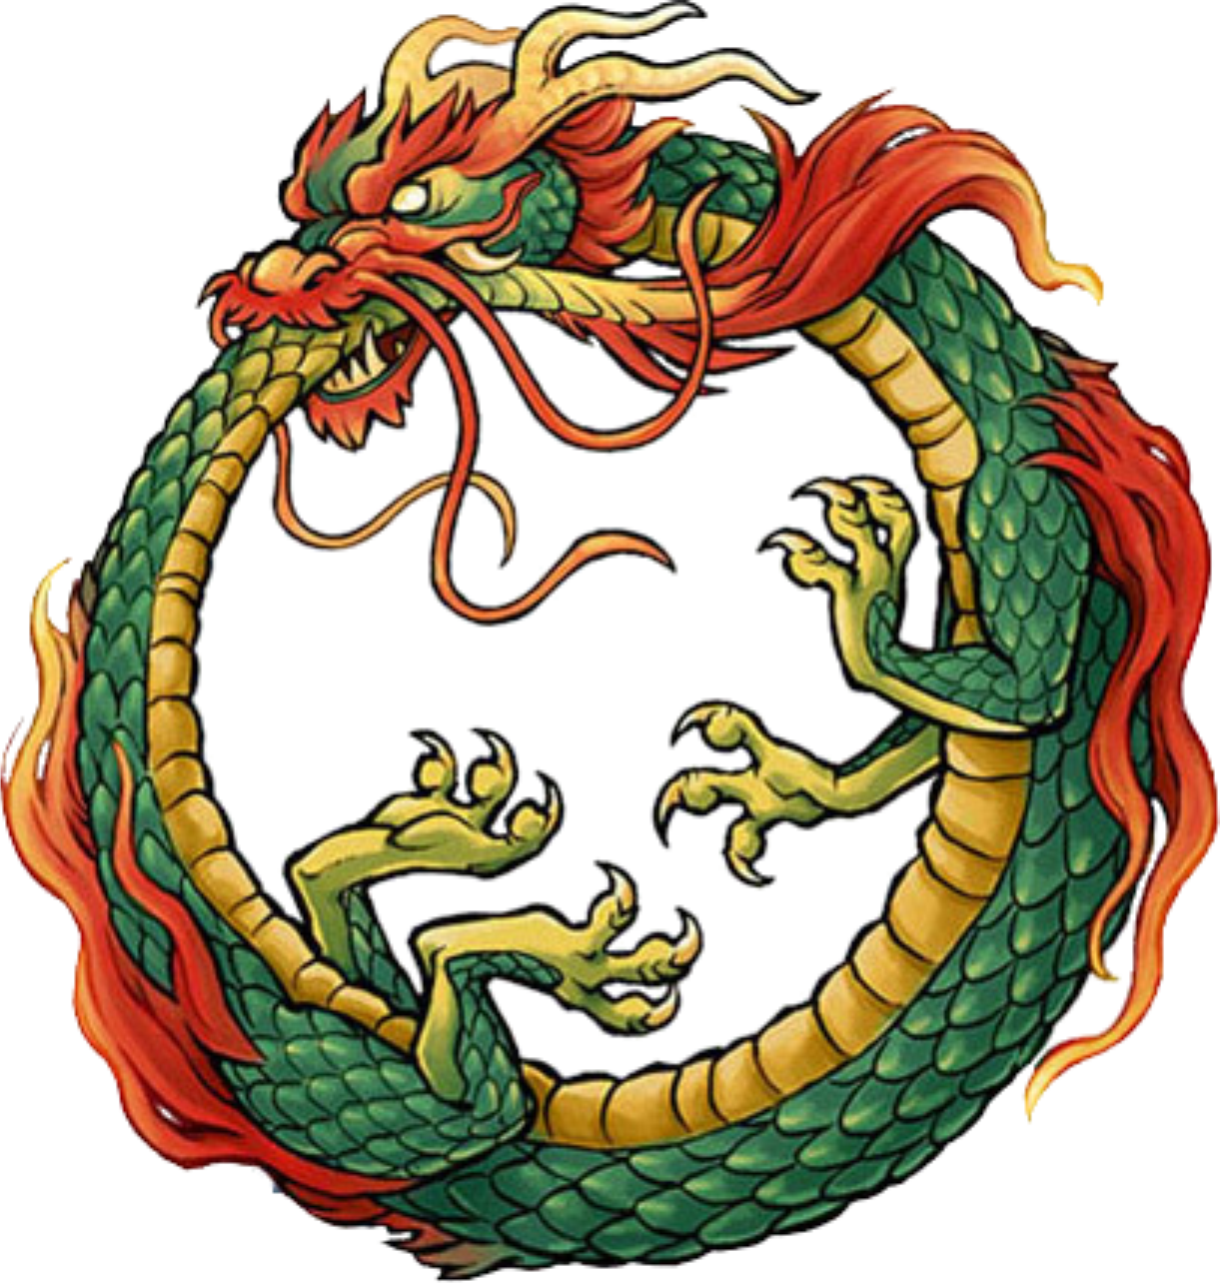 Ouroboros the infinity symbol mythologian the infinity symbol ouroboros the snake eating its tail is depicted in this picture biocorpaavc Image collections